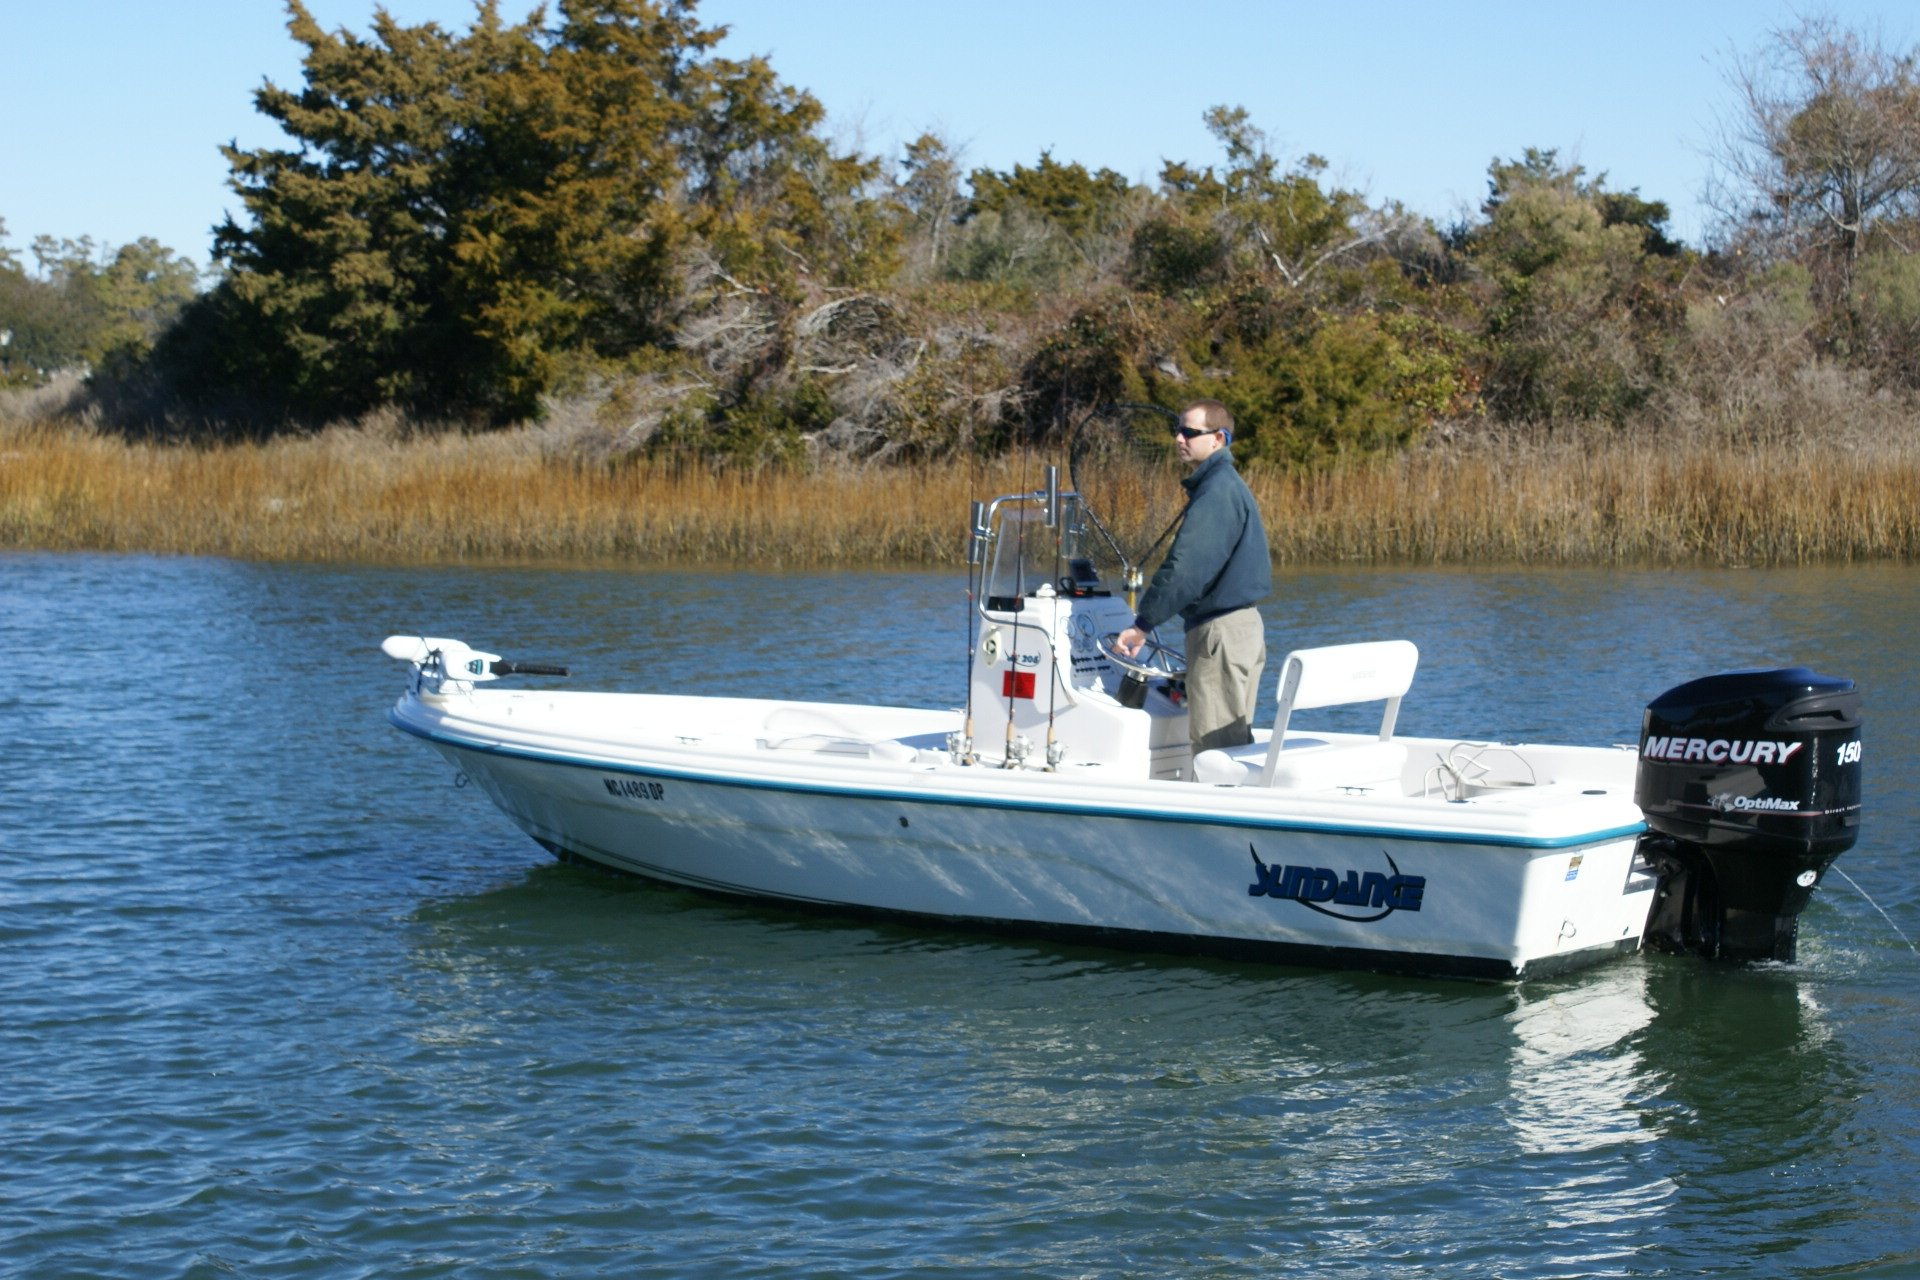 Ocean isle fishing charters ocean isle beach north carolina for Best small fishing boat